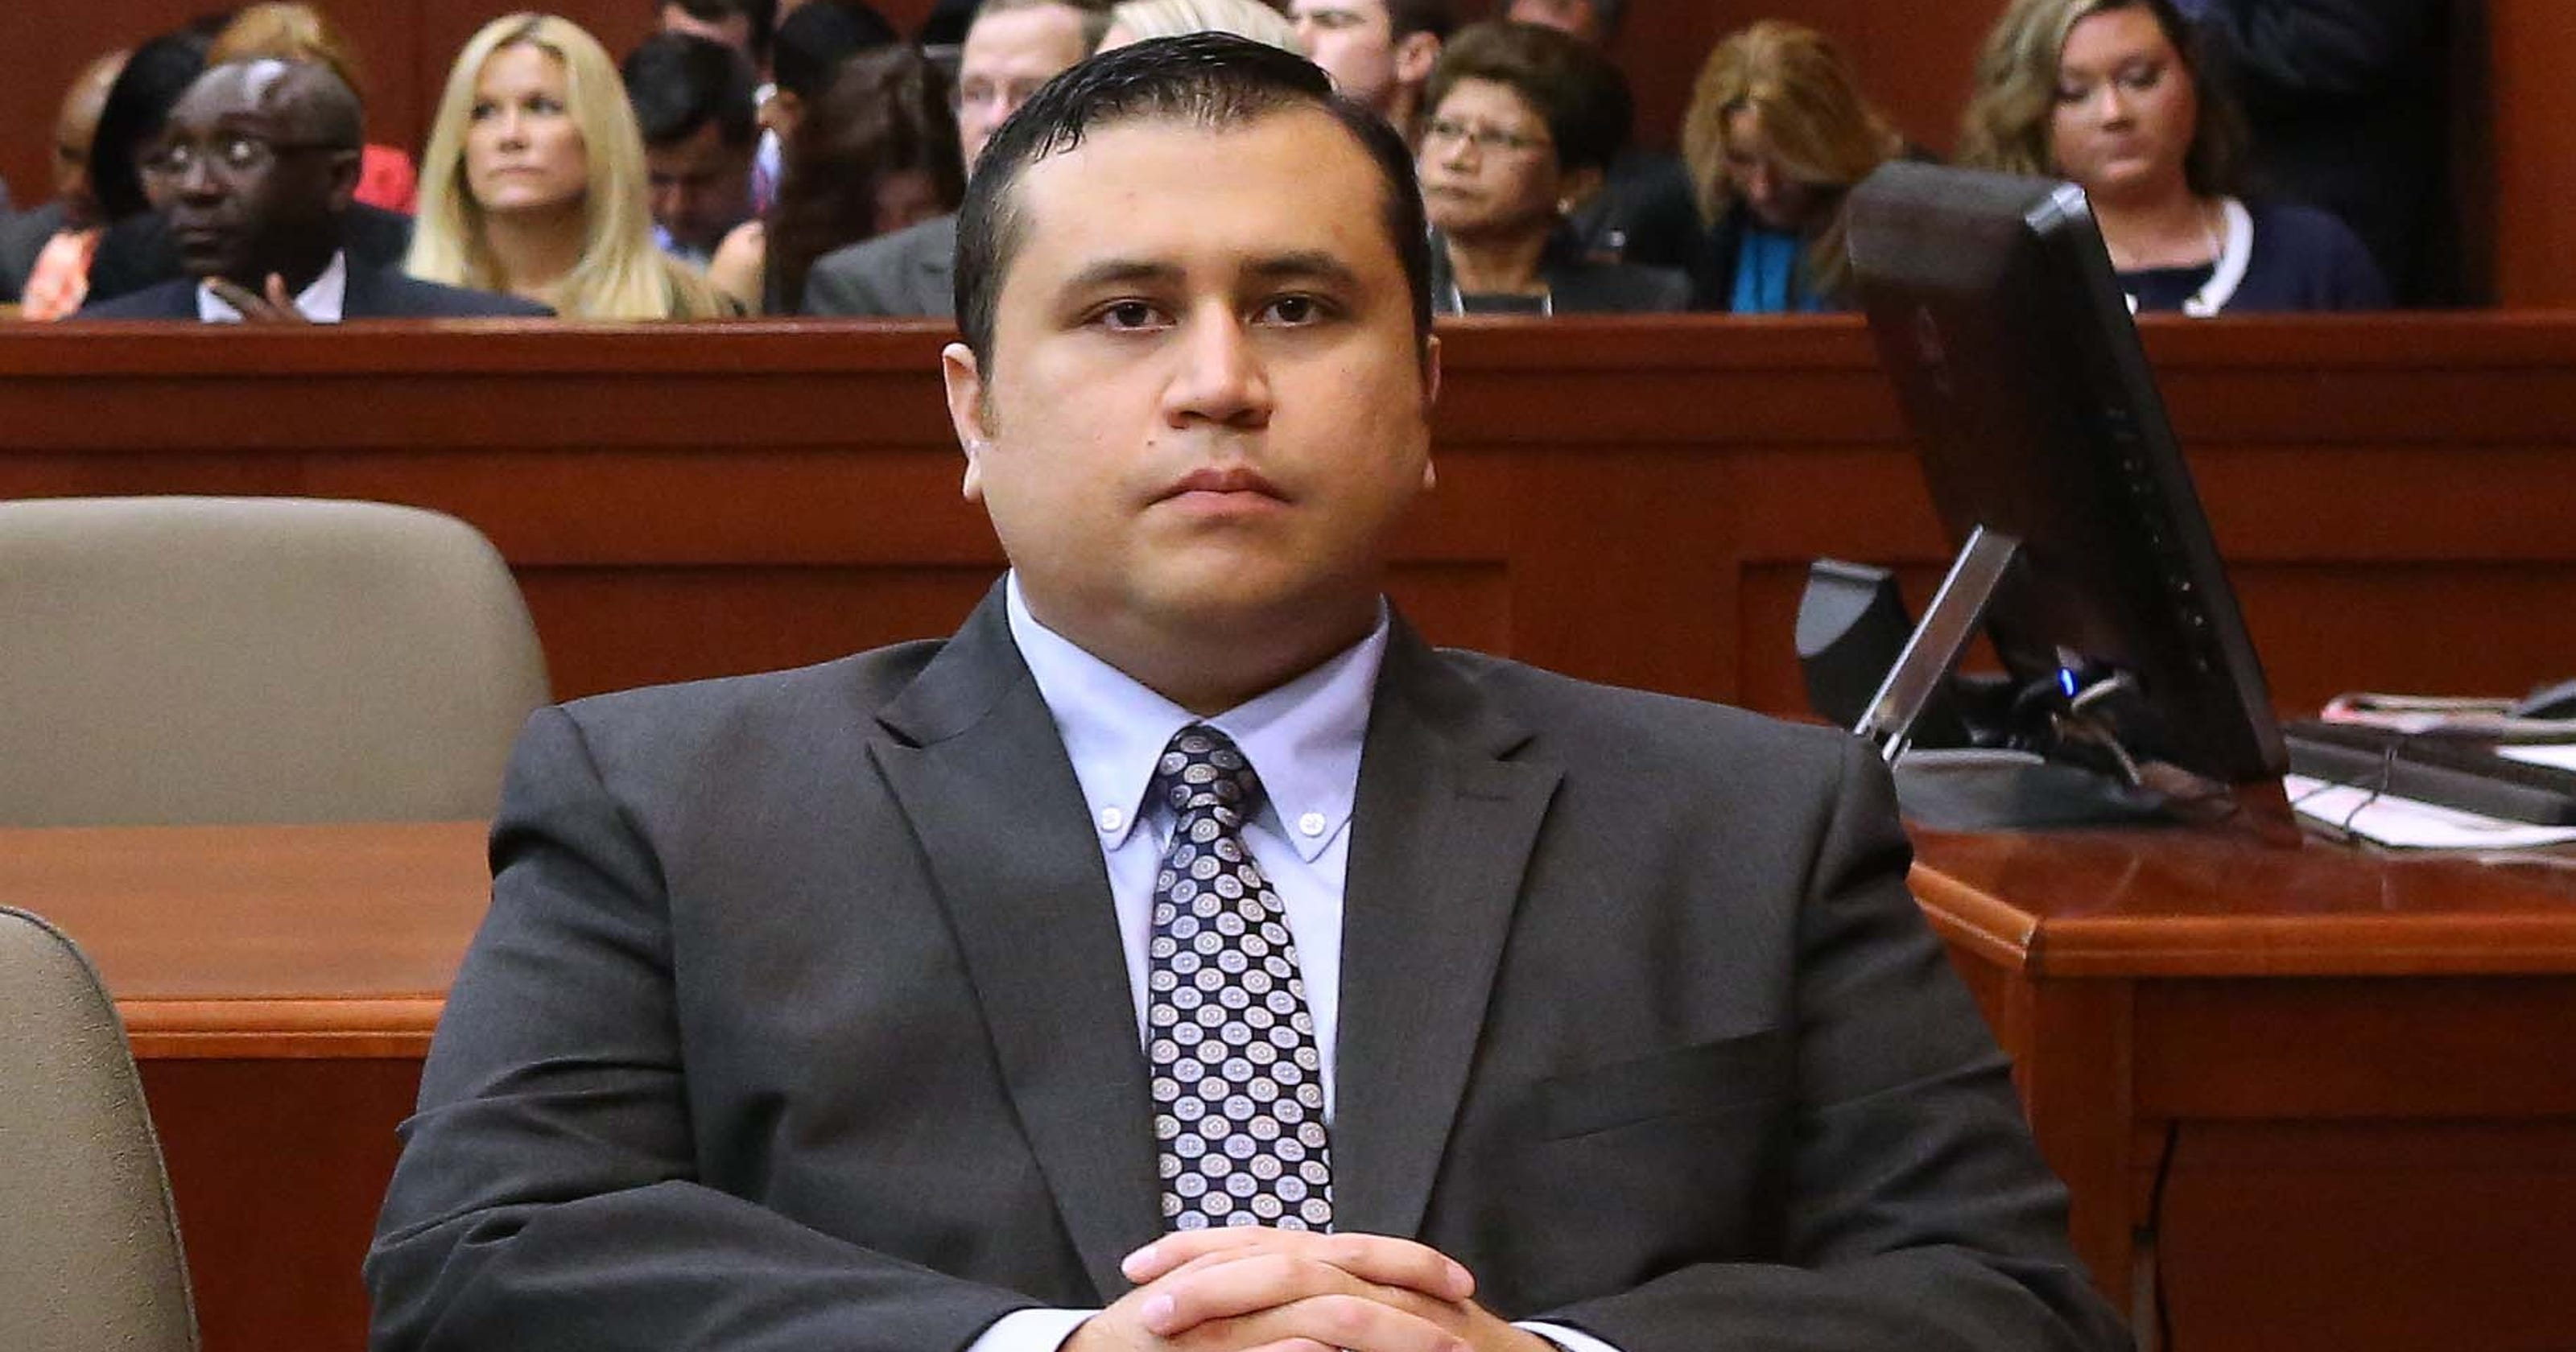 Are there any celebrities who do support the Zimmerman ...